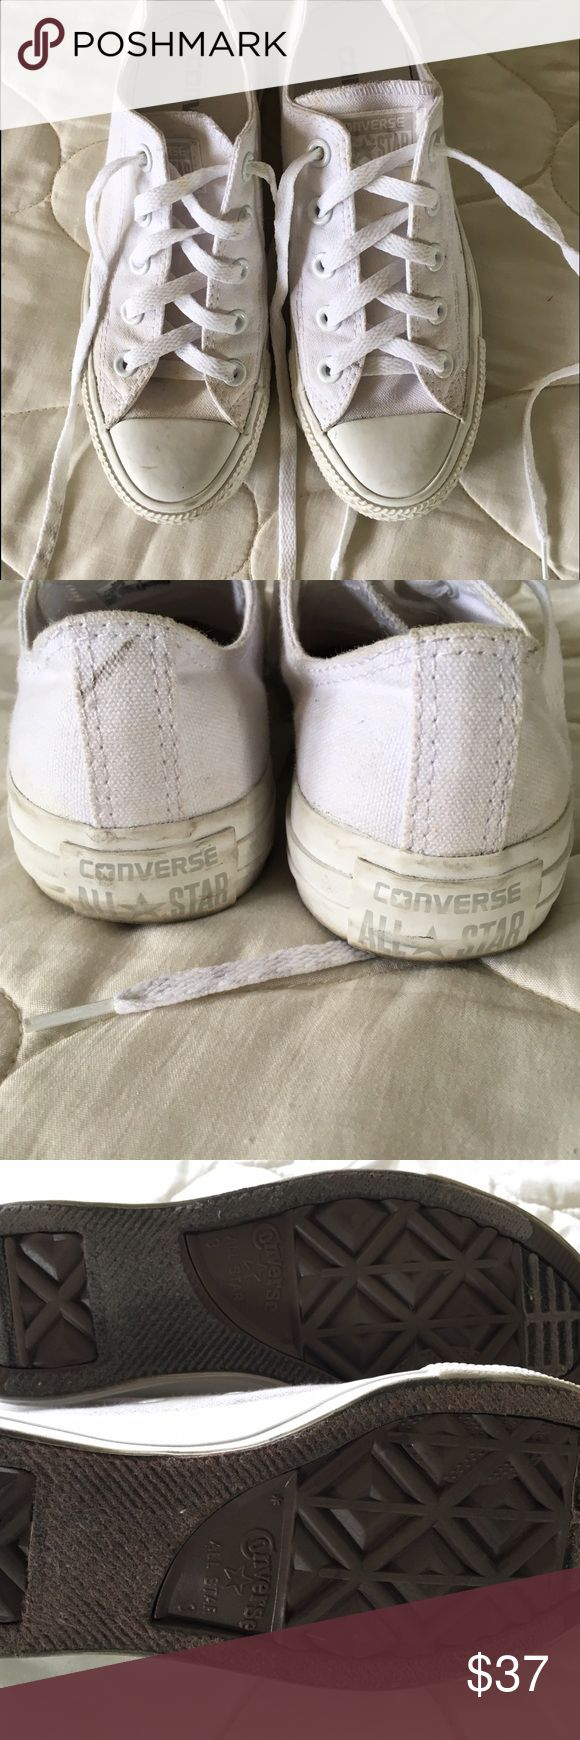 All White Converse - Men's 3 (sizes run big)  I answer questions as soon as possible SMOKE FREE HOME PET FREE HOME  Check out my other items! Bundle For DISCOUNTS  **no more holds  BUY BEFORE SOMEONE ELSE DOES! - i am not cancelling if someone buys before you do Converse Shoes Sneakers